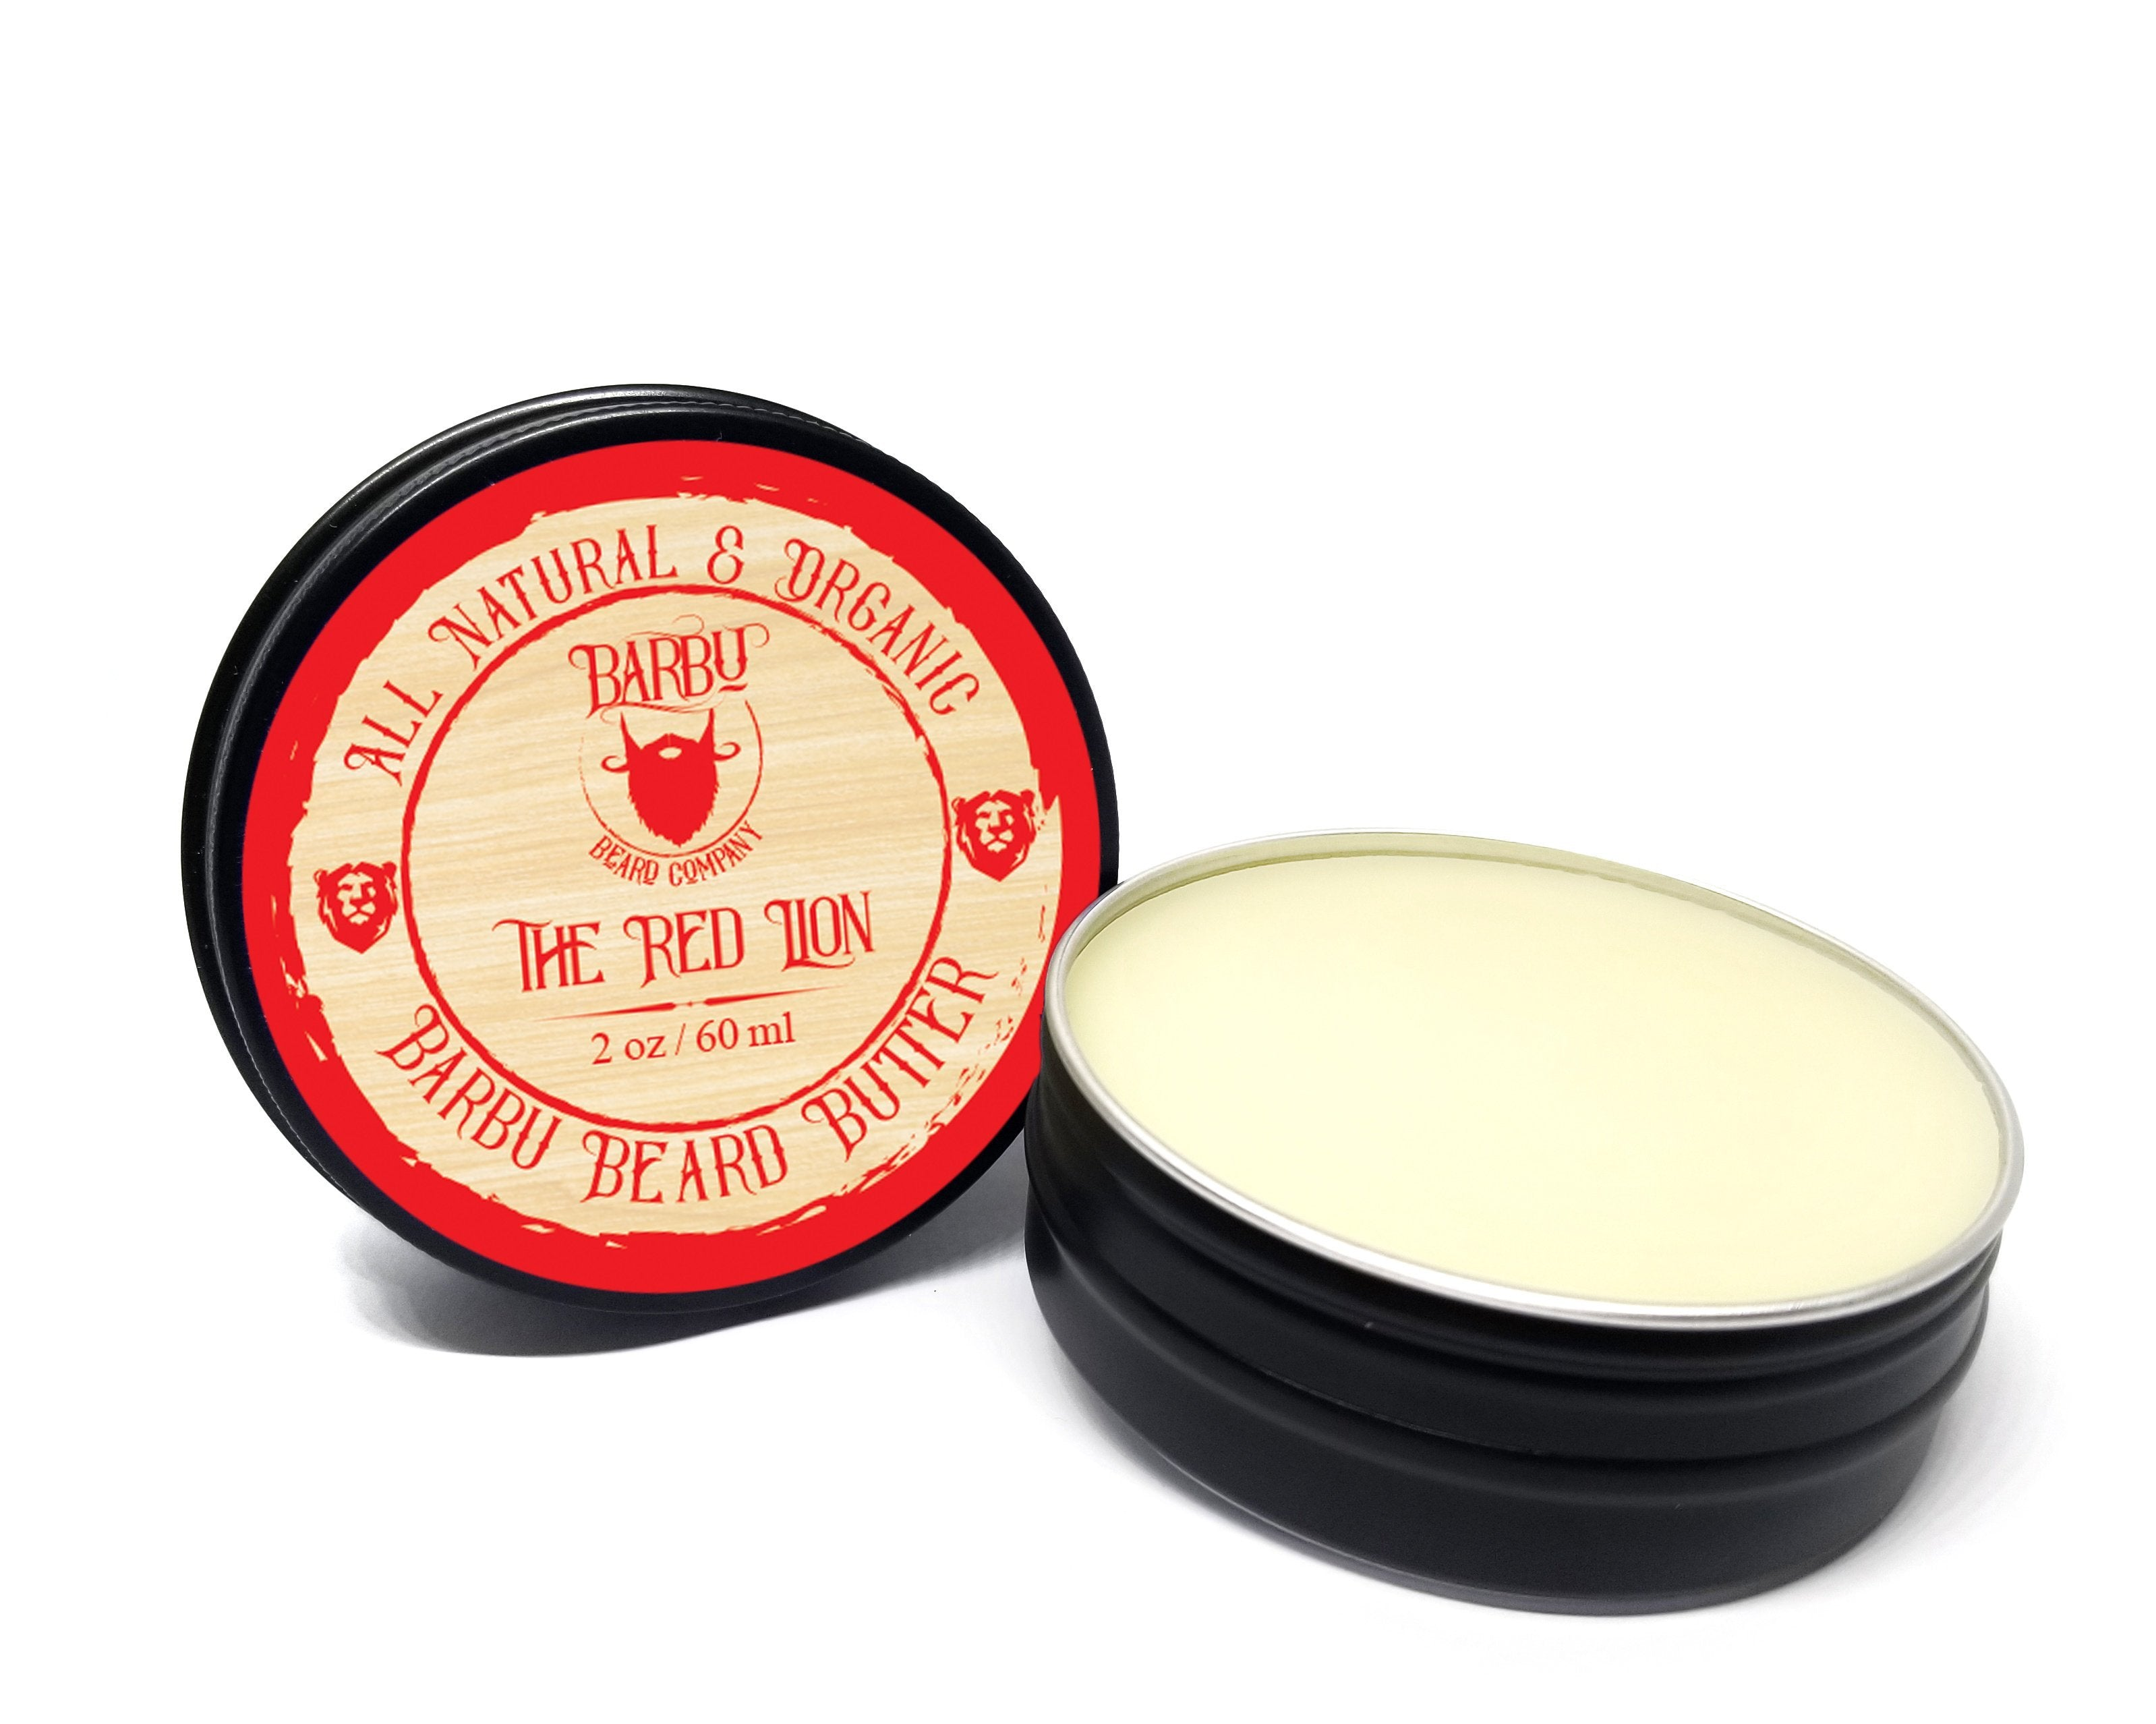 The Red Lion Beard Butter